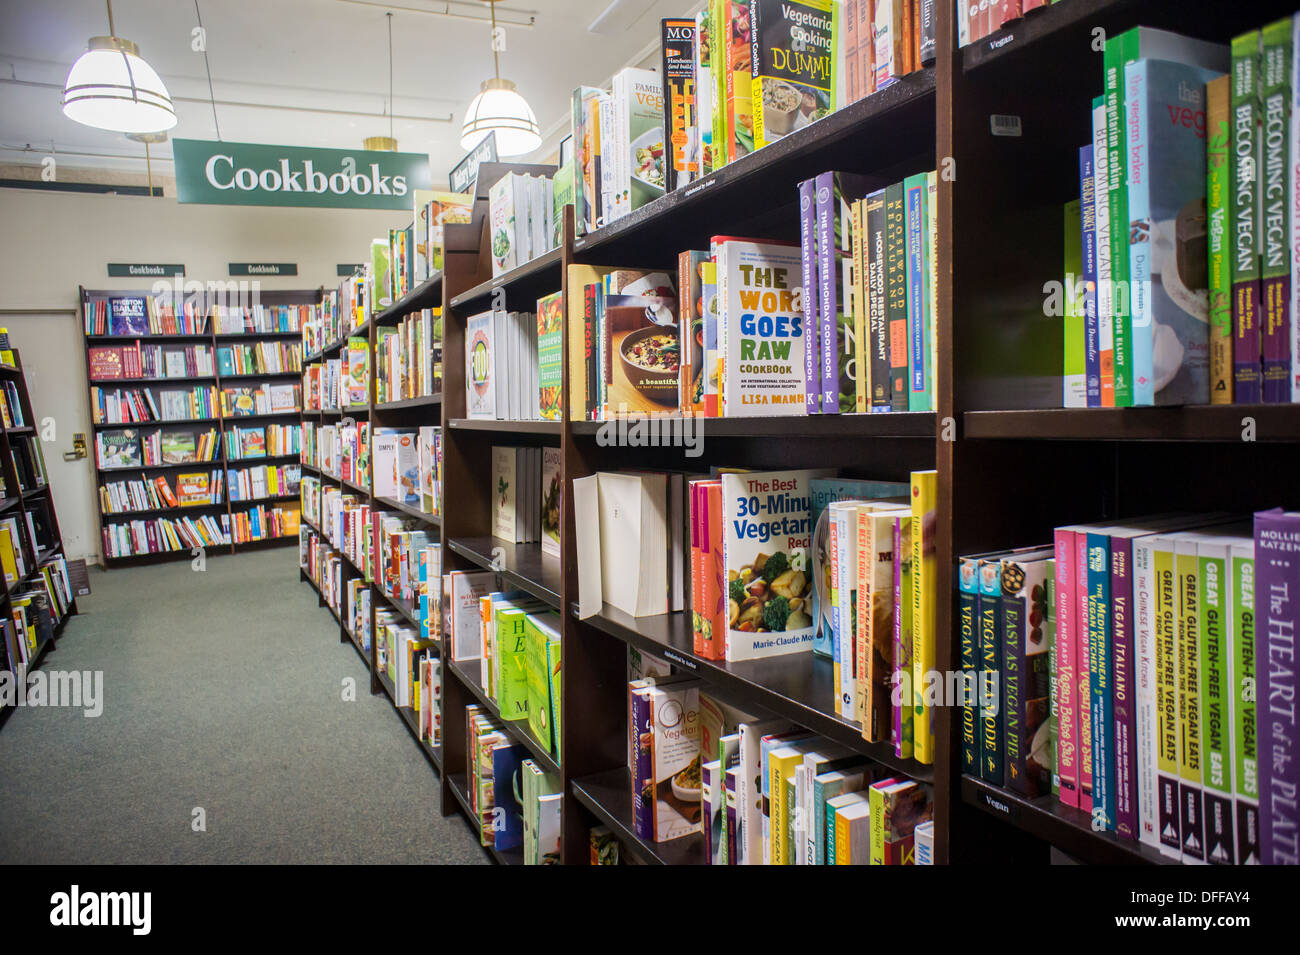 The Cookbook Aisle In A Barnes Noble Bookstore In New York On